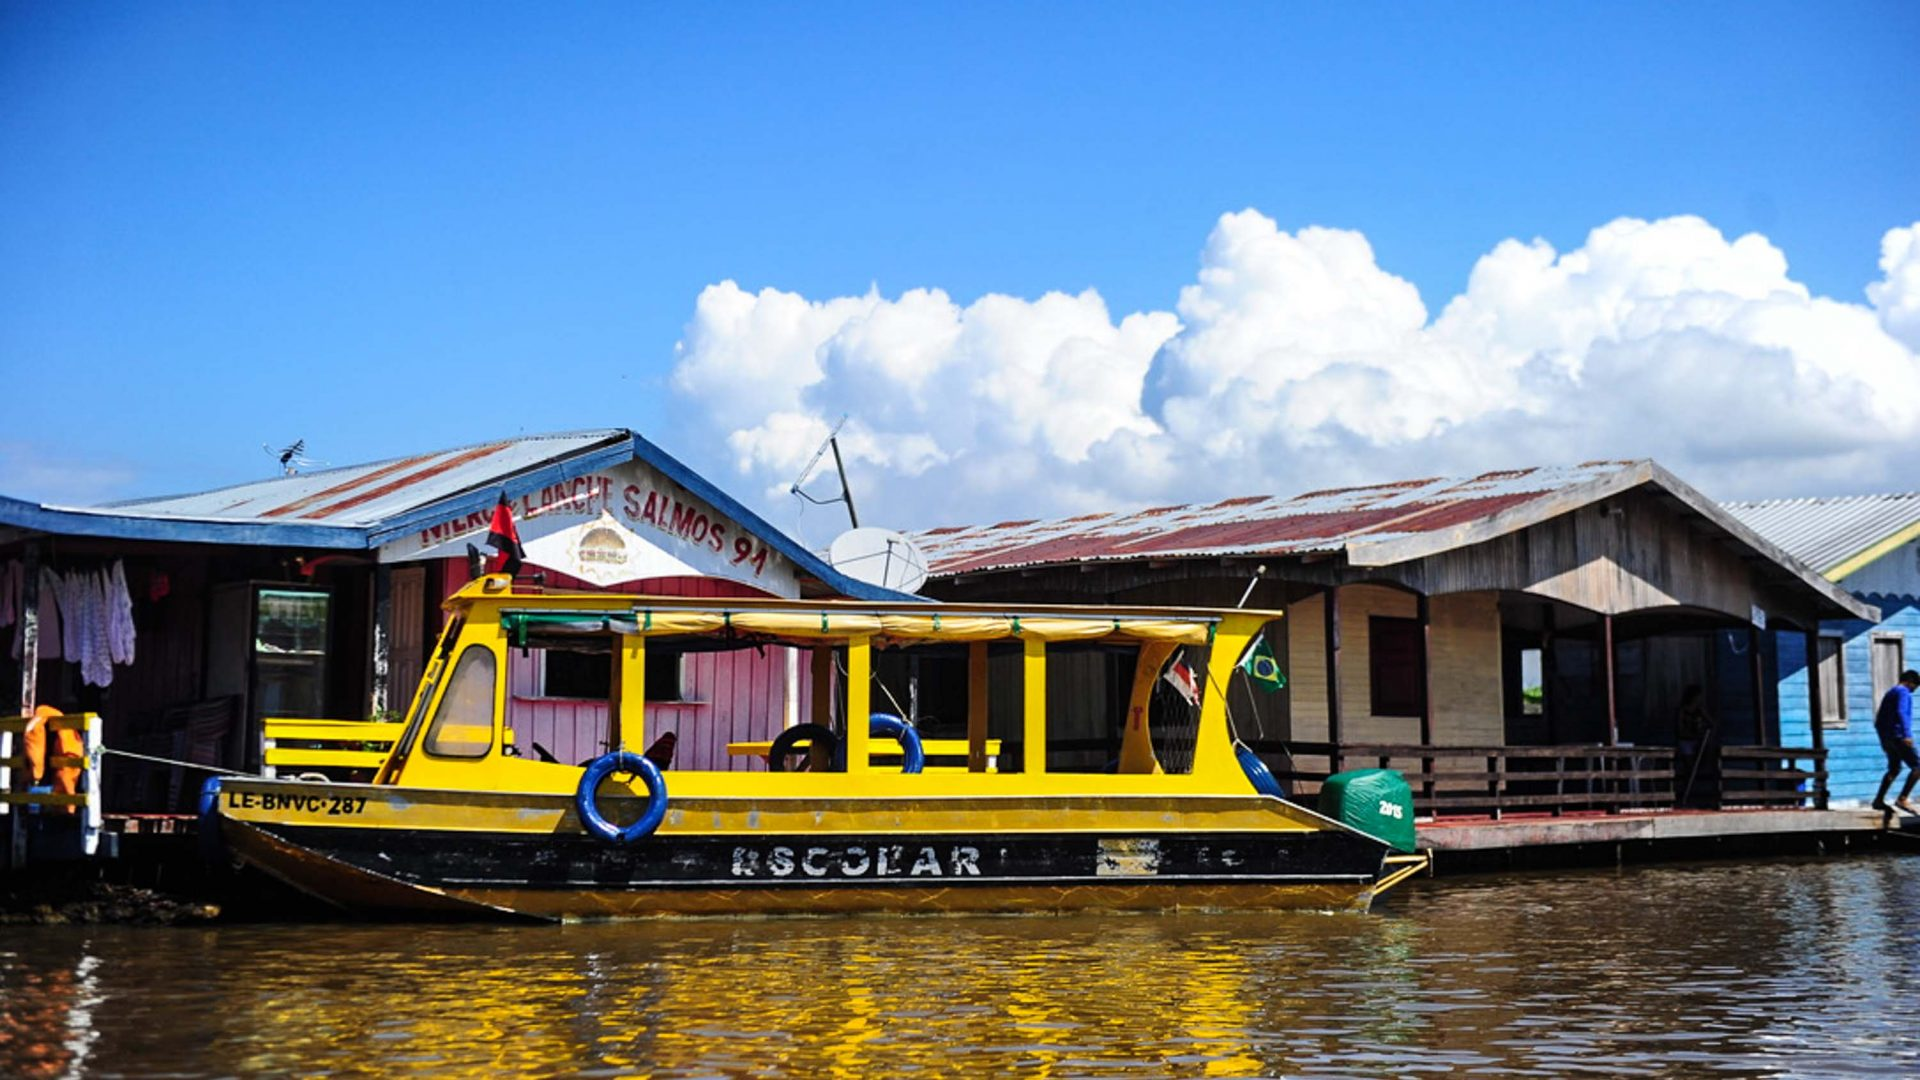 Floating farmsteads are a regular sight during this Amazon riverboat trip.